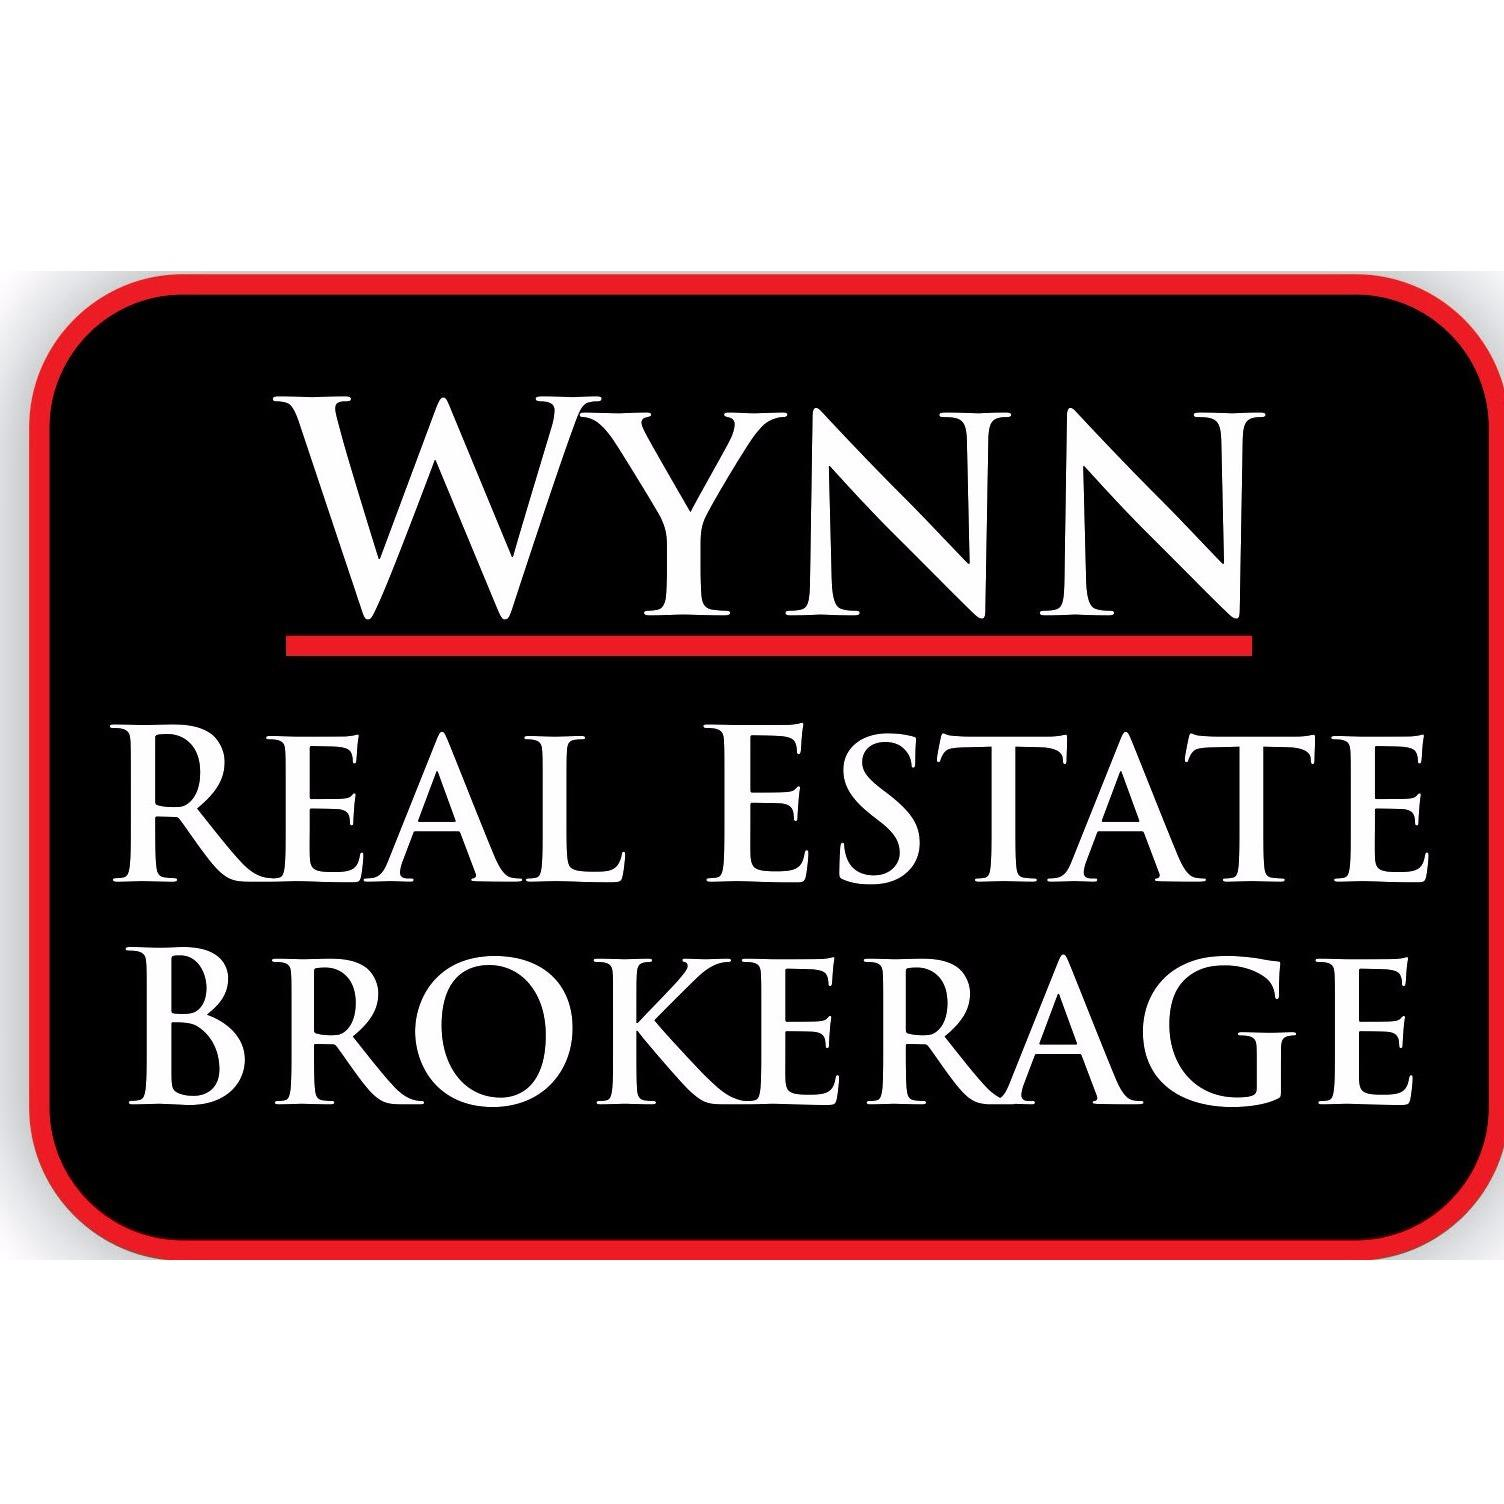 Wynn Real estate Brokerage